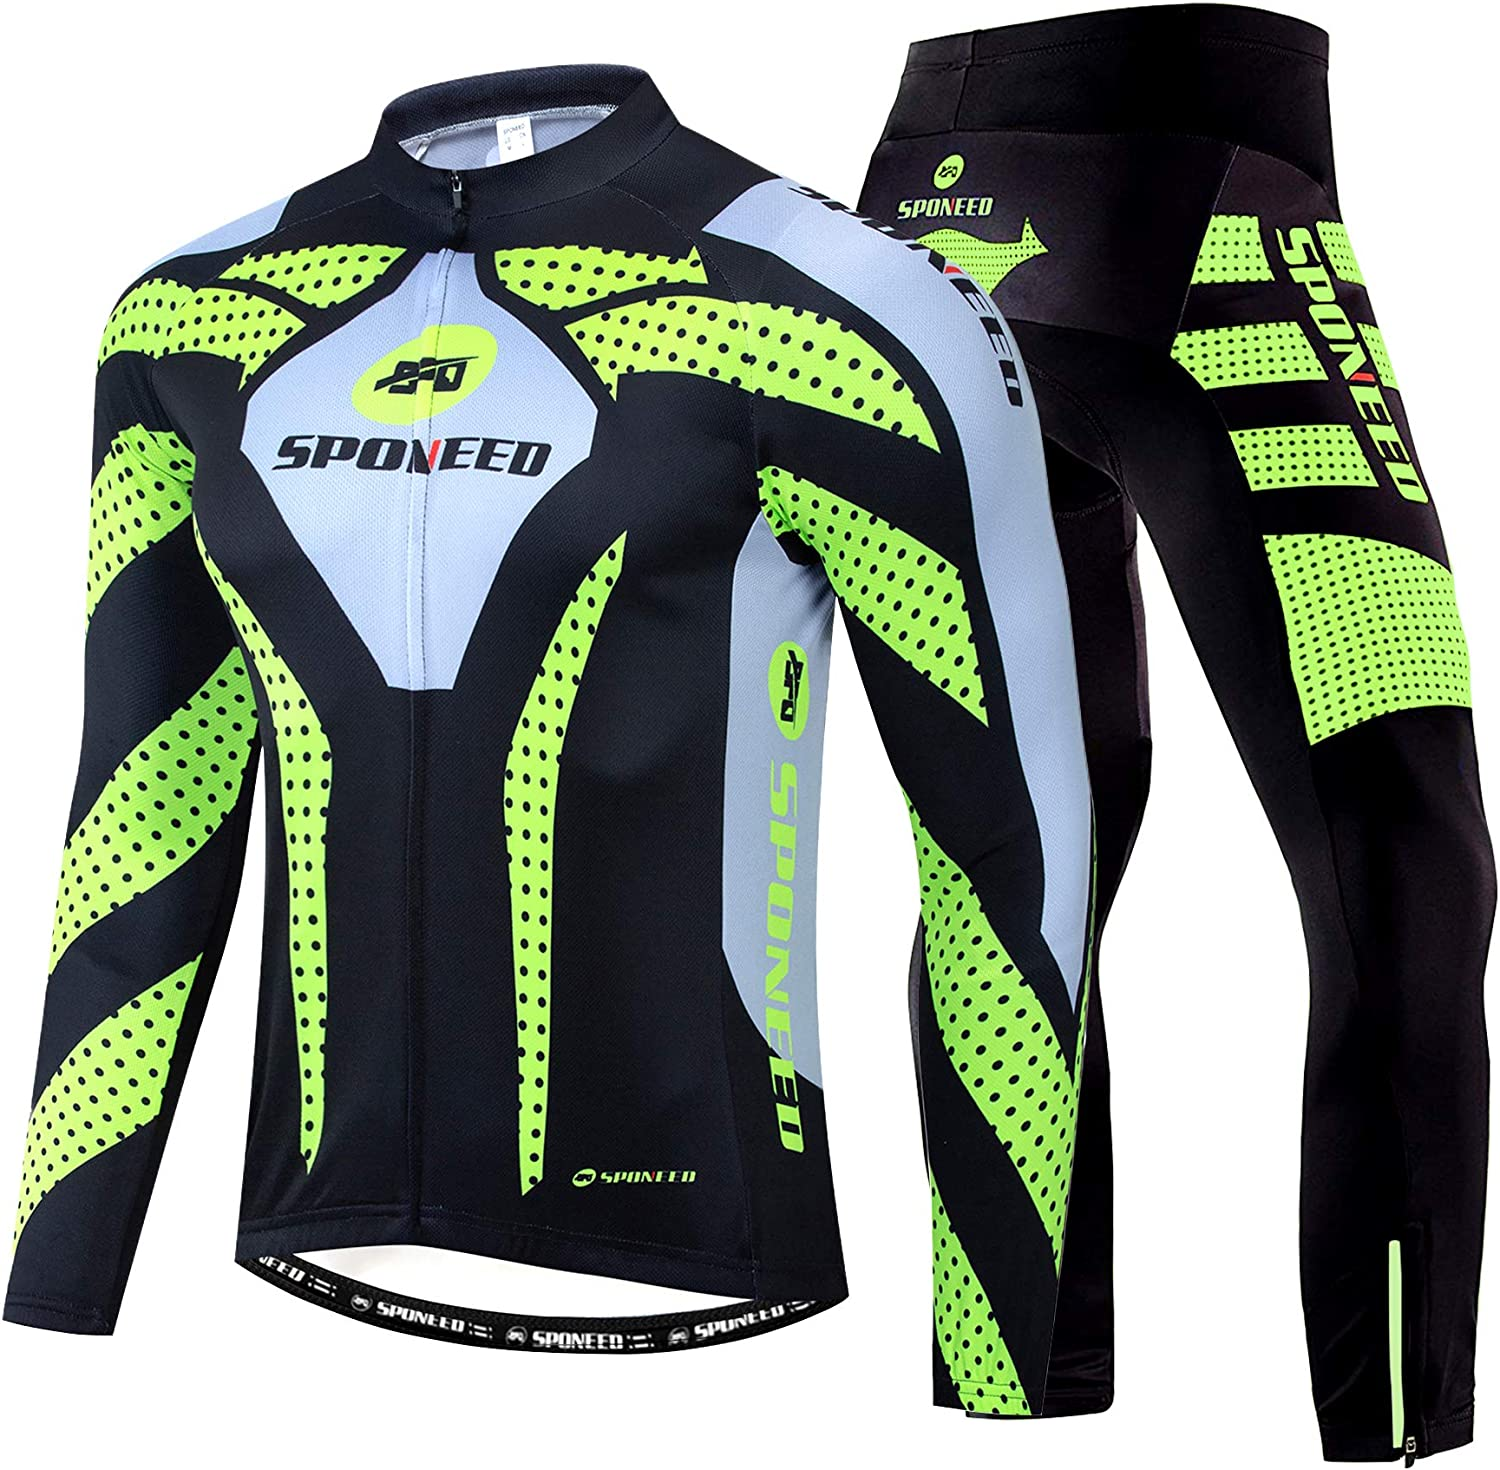 sponeed Max 65% OFF Men's Weekly update Cycling Jersey Full Wear Long Sleeve Riding